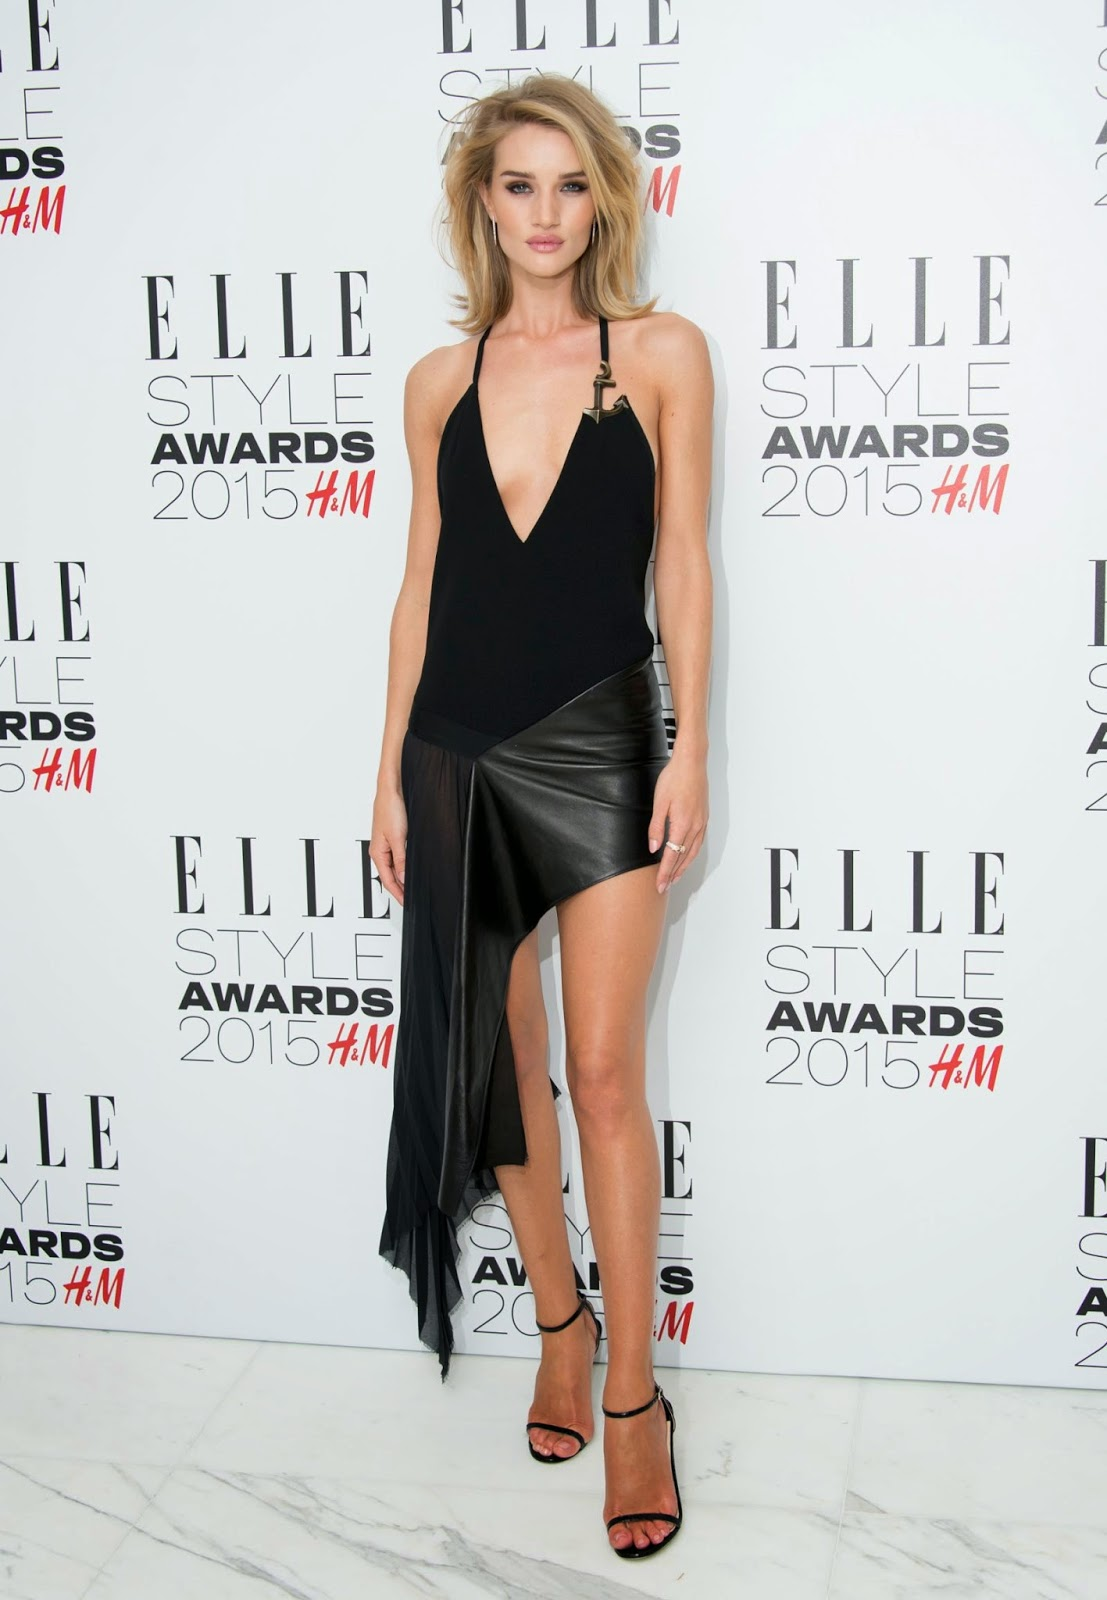 Rosie Huntington-Whiteley flashes skin in a leather and suede dress at the 2015 Elle Style Awards in London